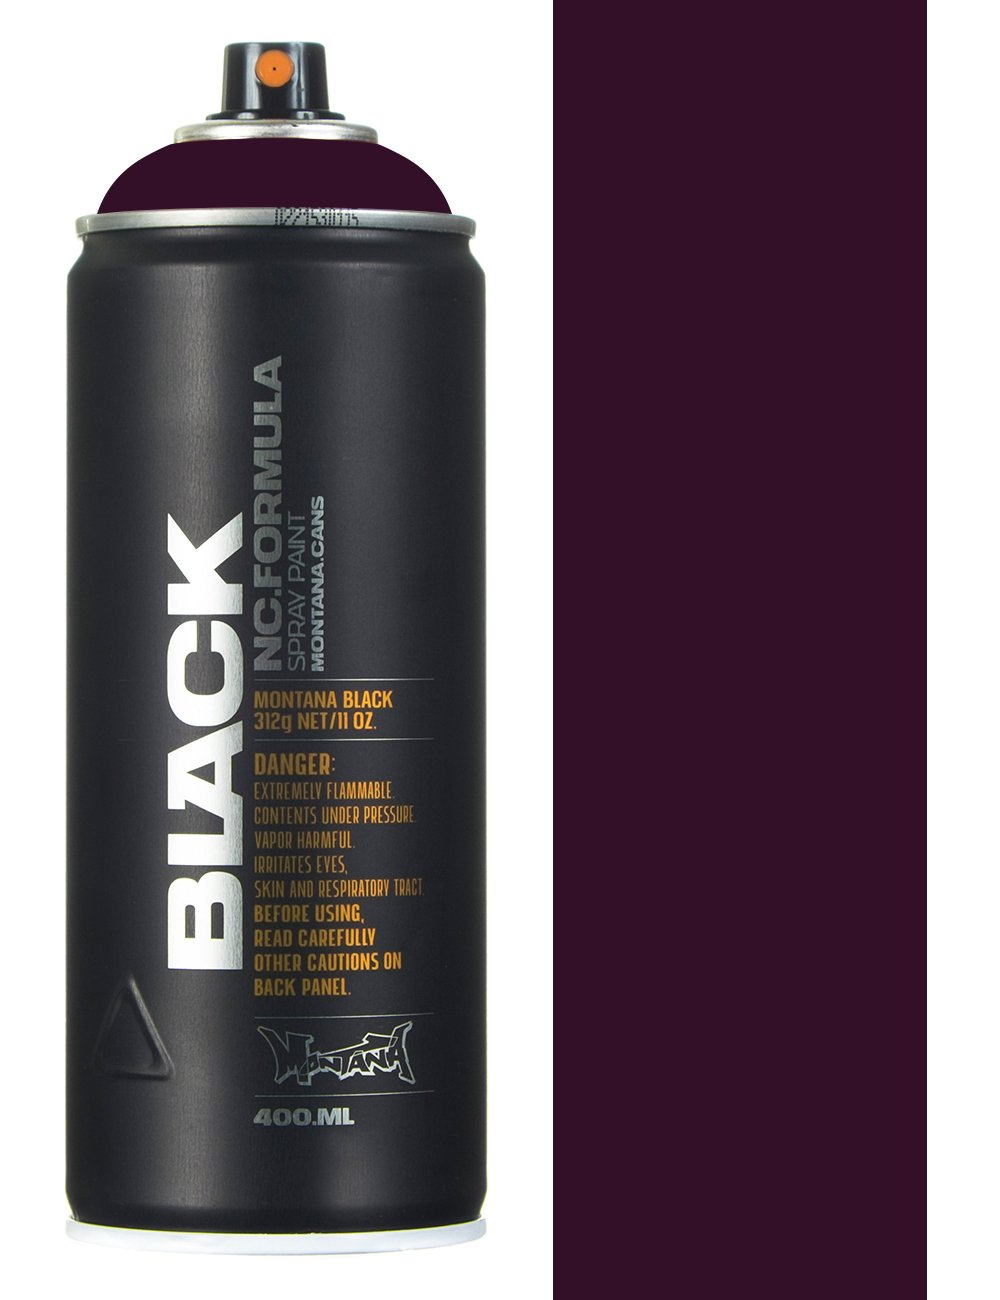 Montana Black Cherry Spray Paint 400ml Montana Black From Fat Buddha Store Uk